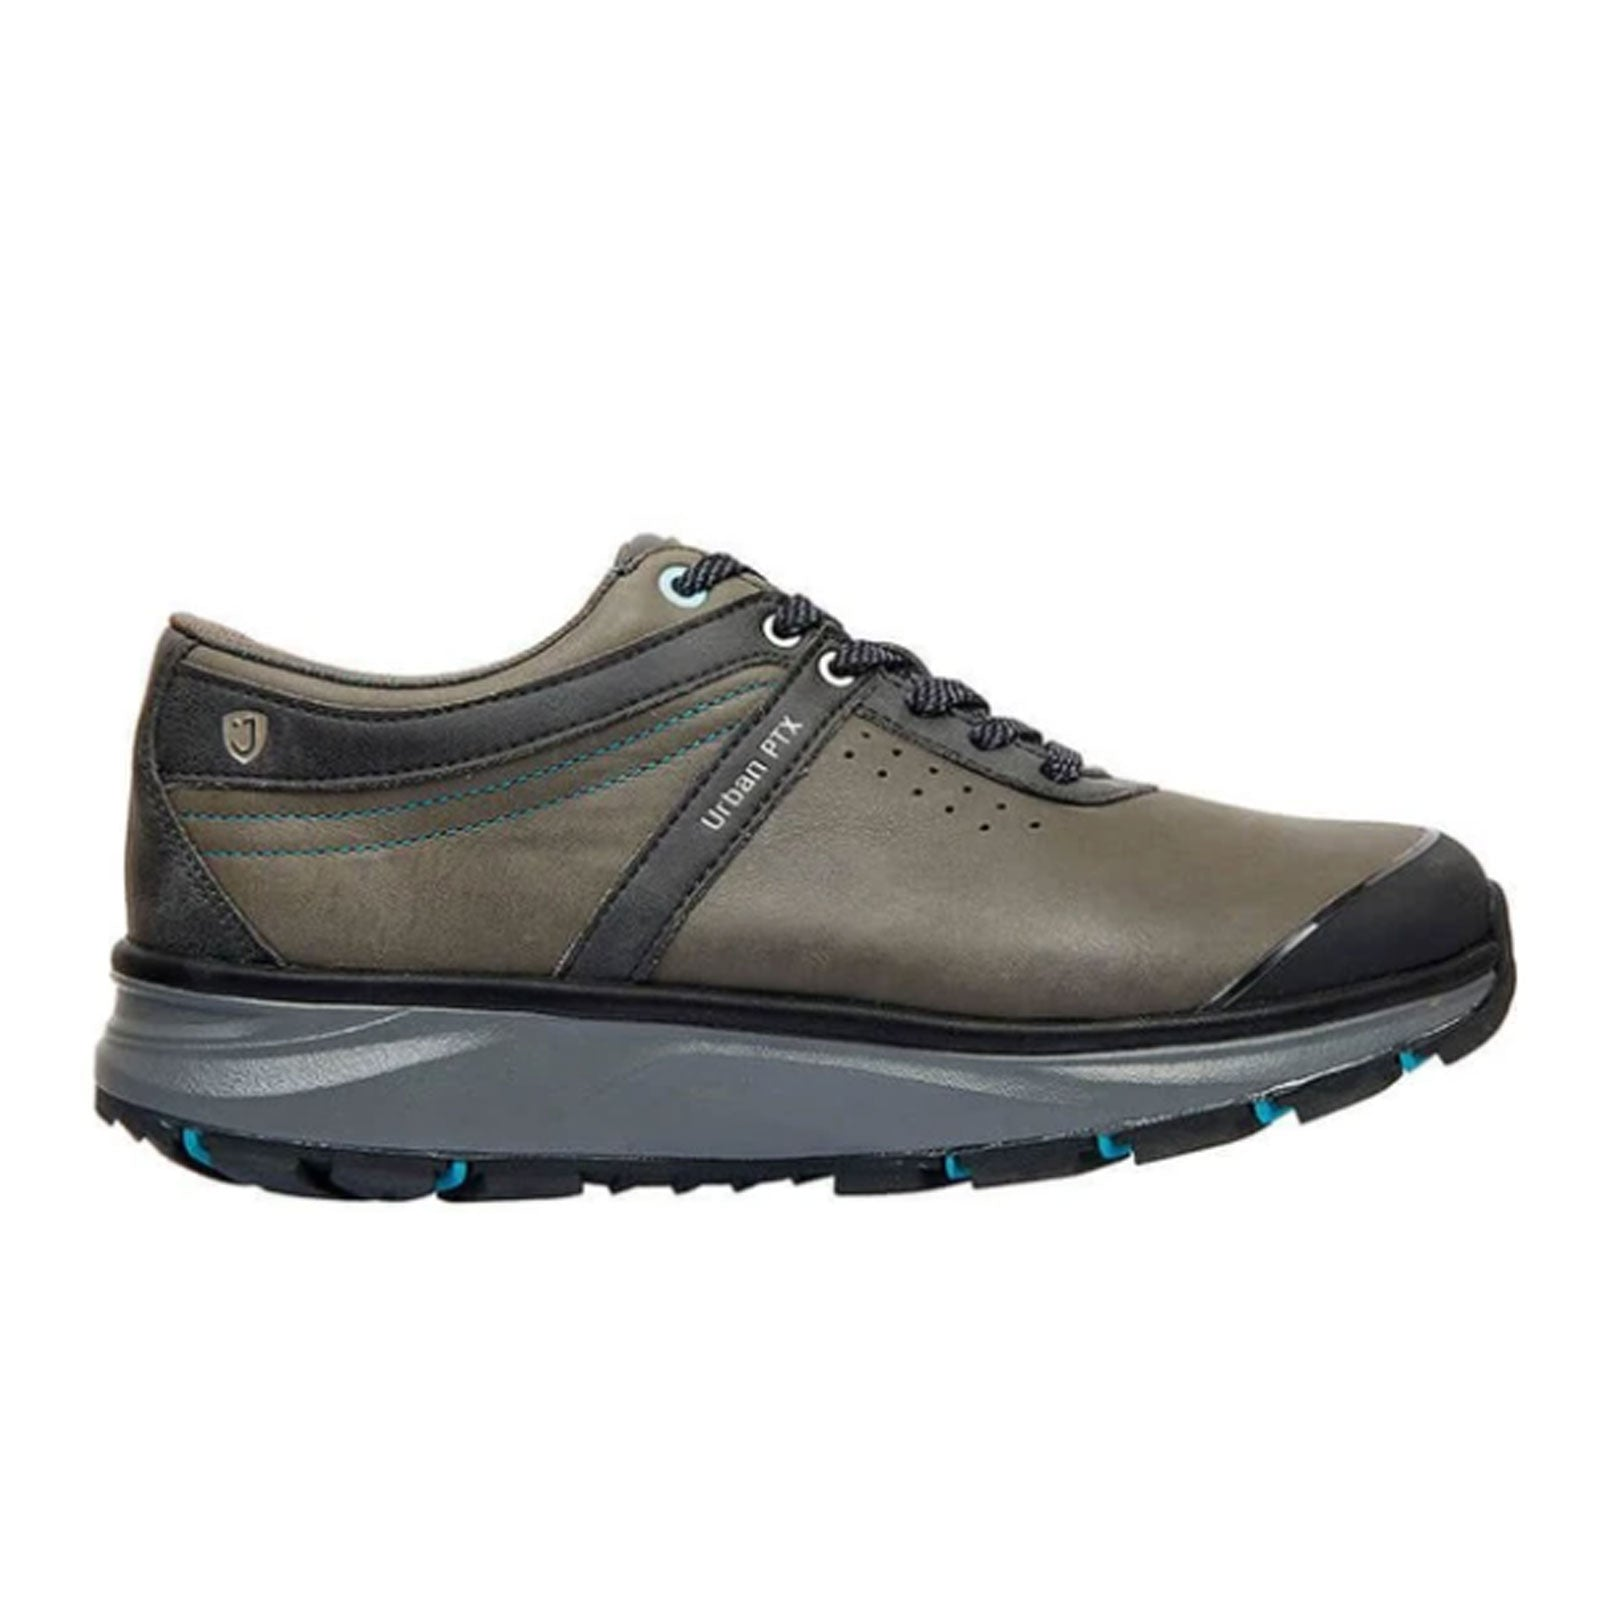 Joya Montana Low PTX (Women) - Stone Dress/Casual|Lace Ups - The Heel Shoe Fitters